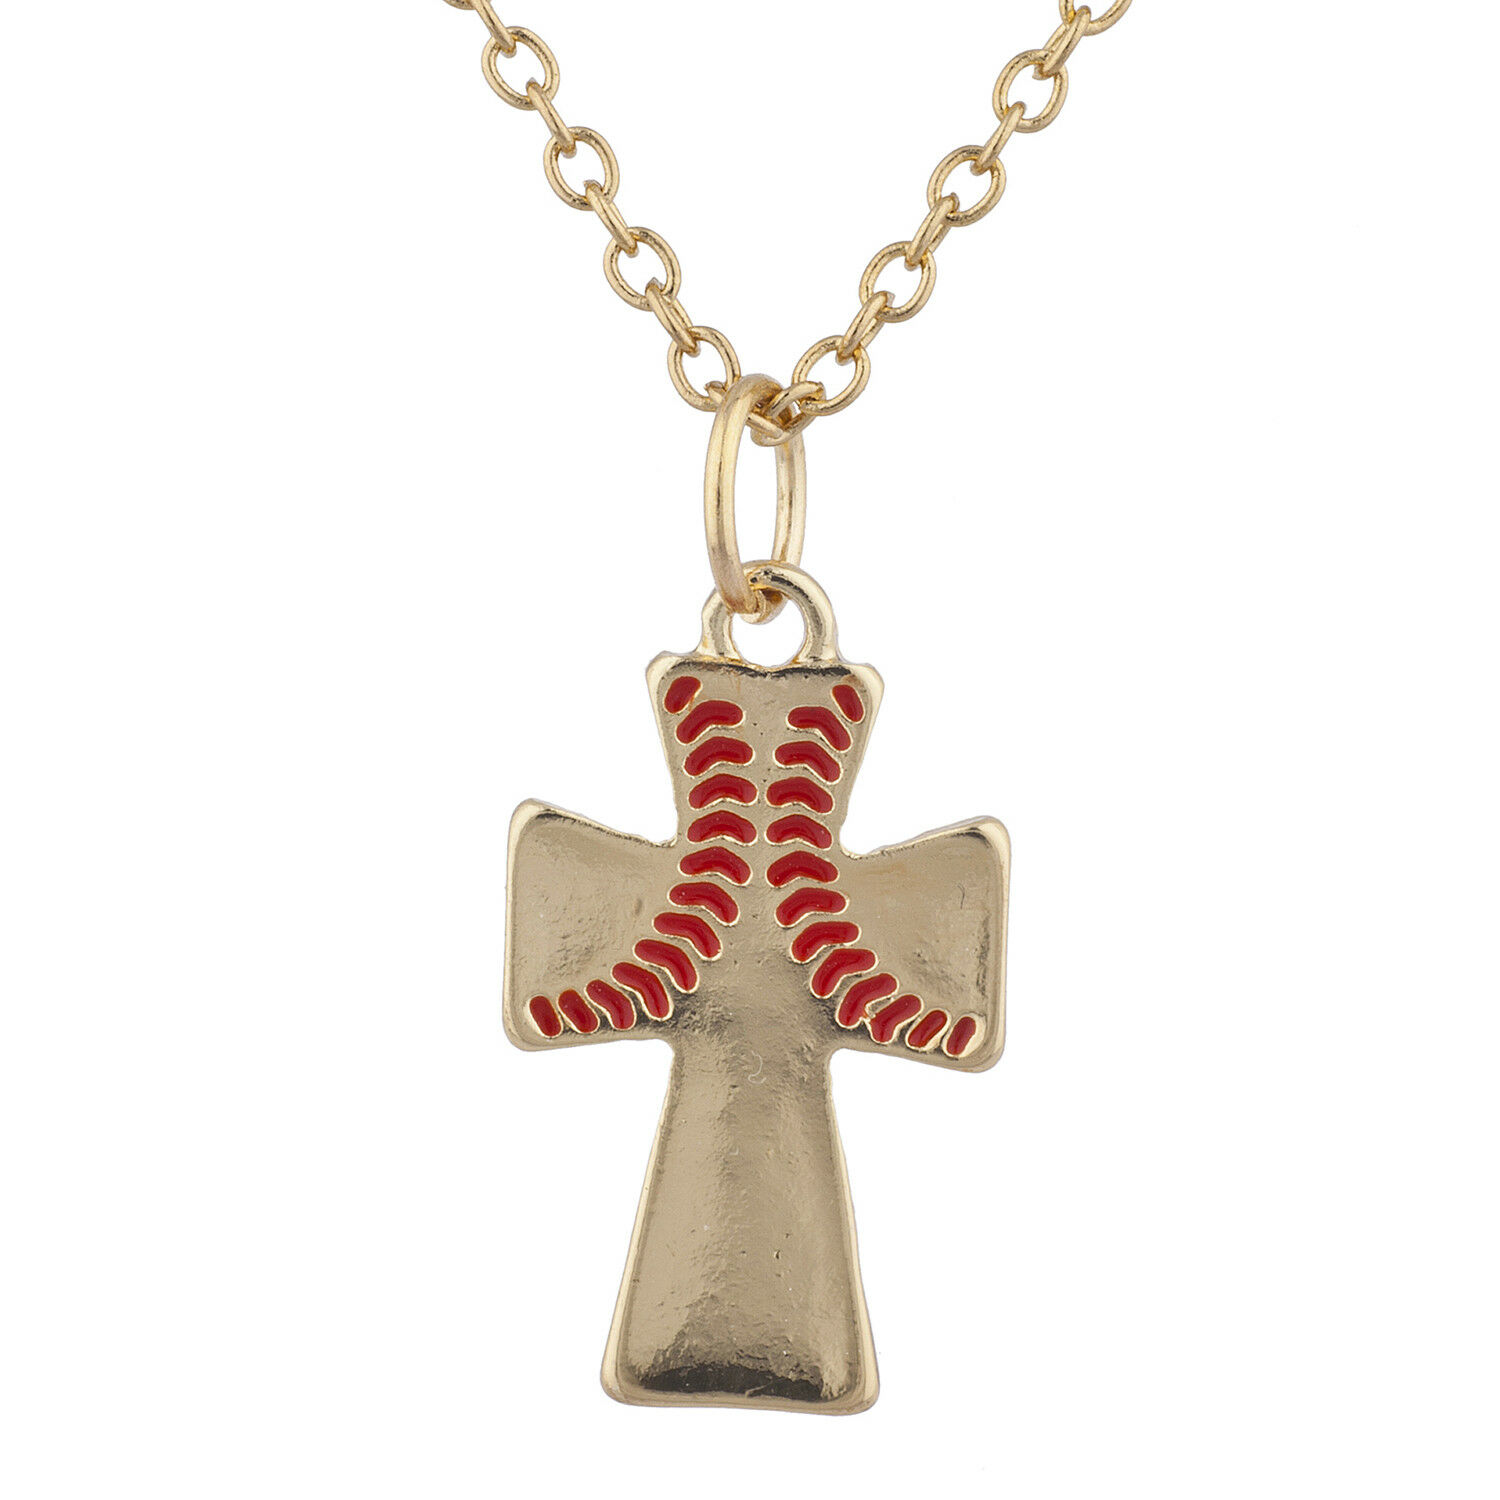 thecolorbars pendant baseball boys ball necklaces necklace cross for glamorous chain charm